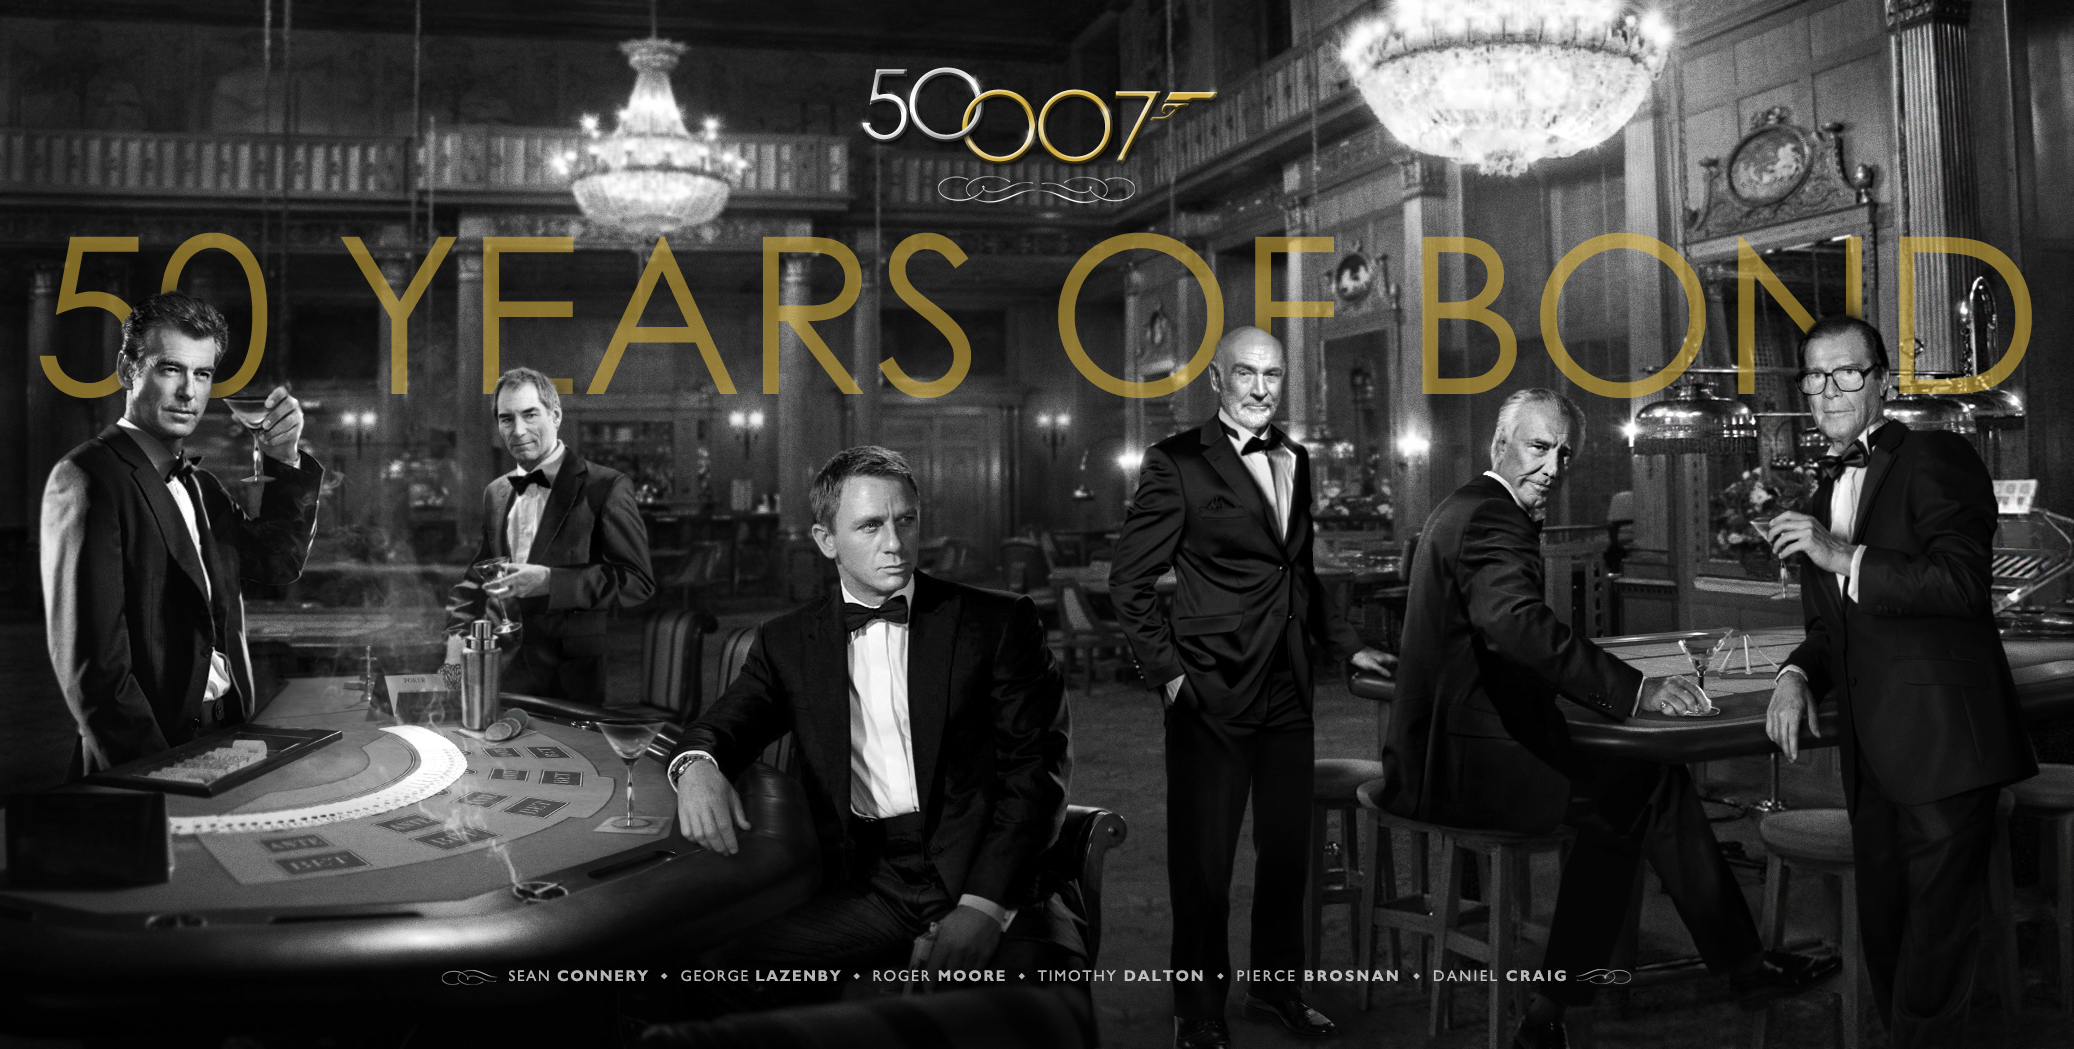 bond_50___50_years_of_bond_by_themadbutcher-d5dy0xl.jpg